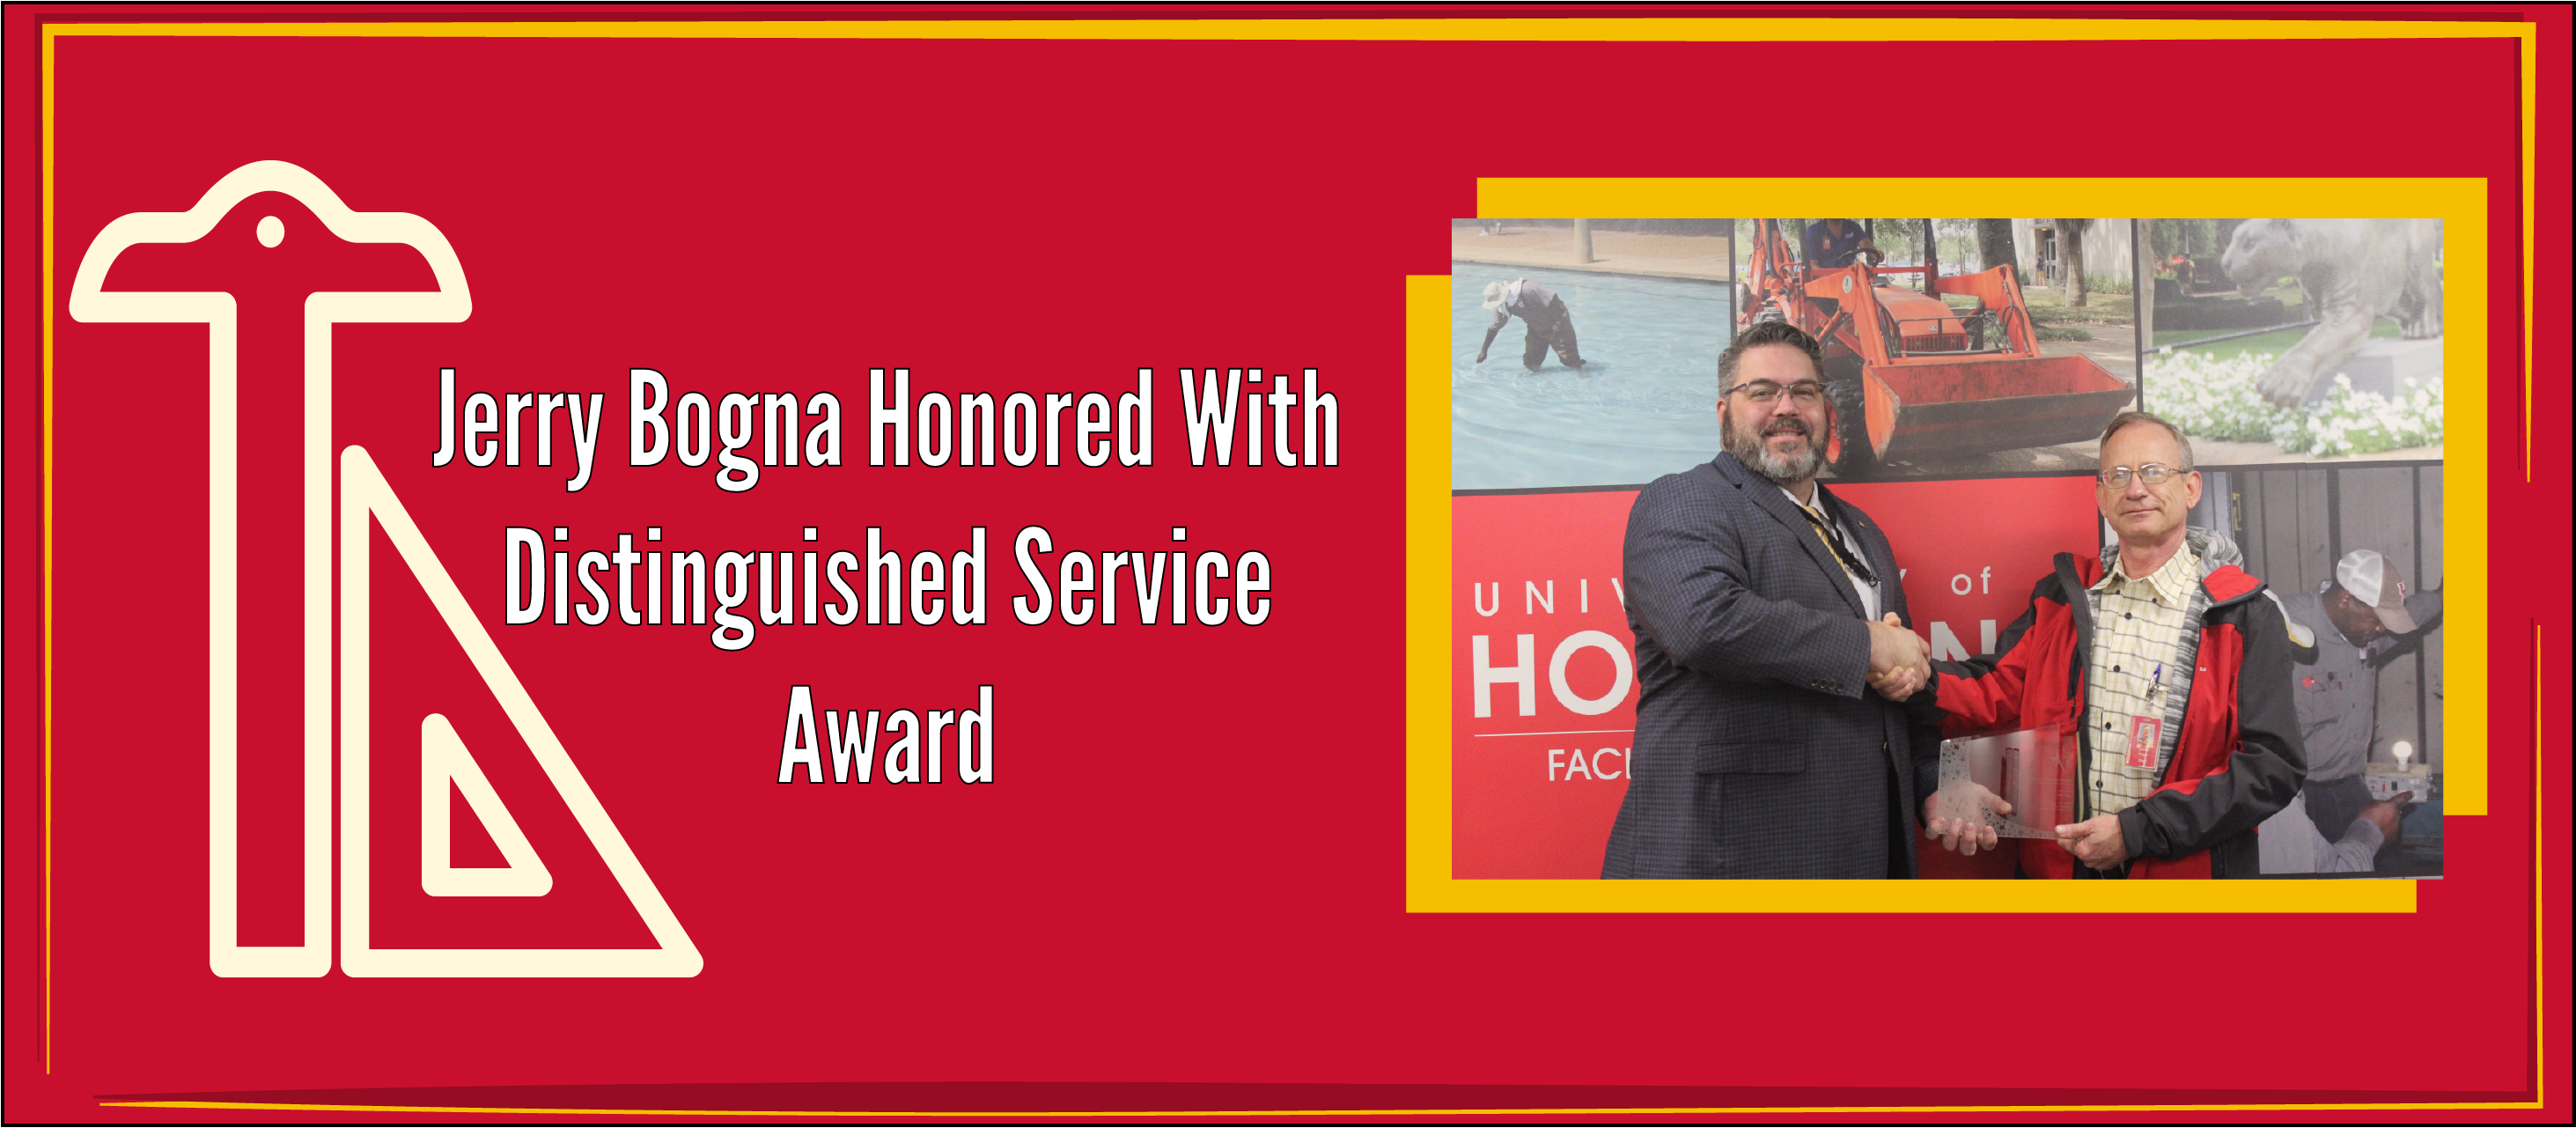 Jerry Bogna Honored with Distinguished Service Award